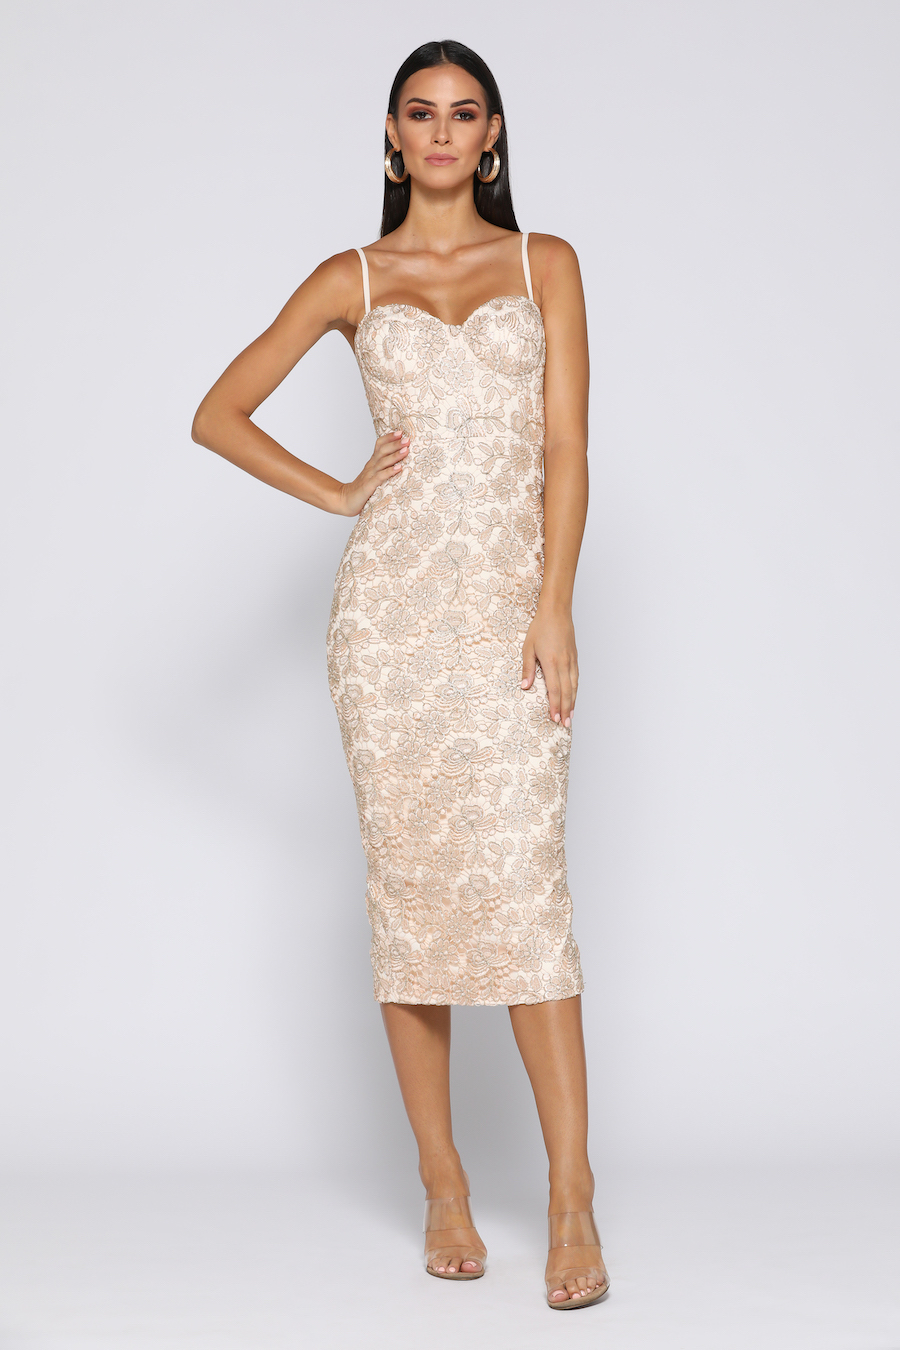 Champagne Lace bustier dress